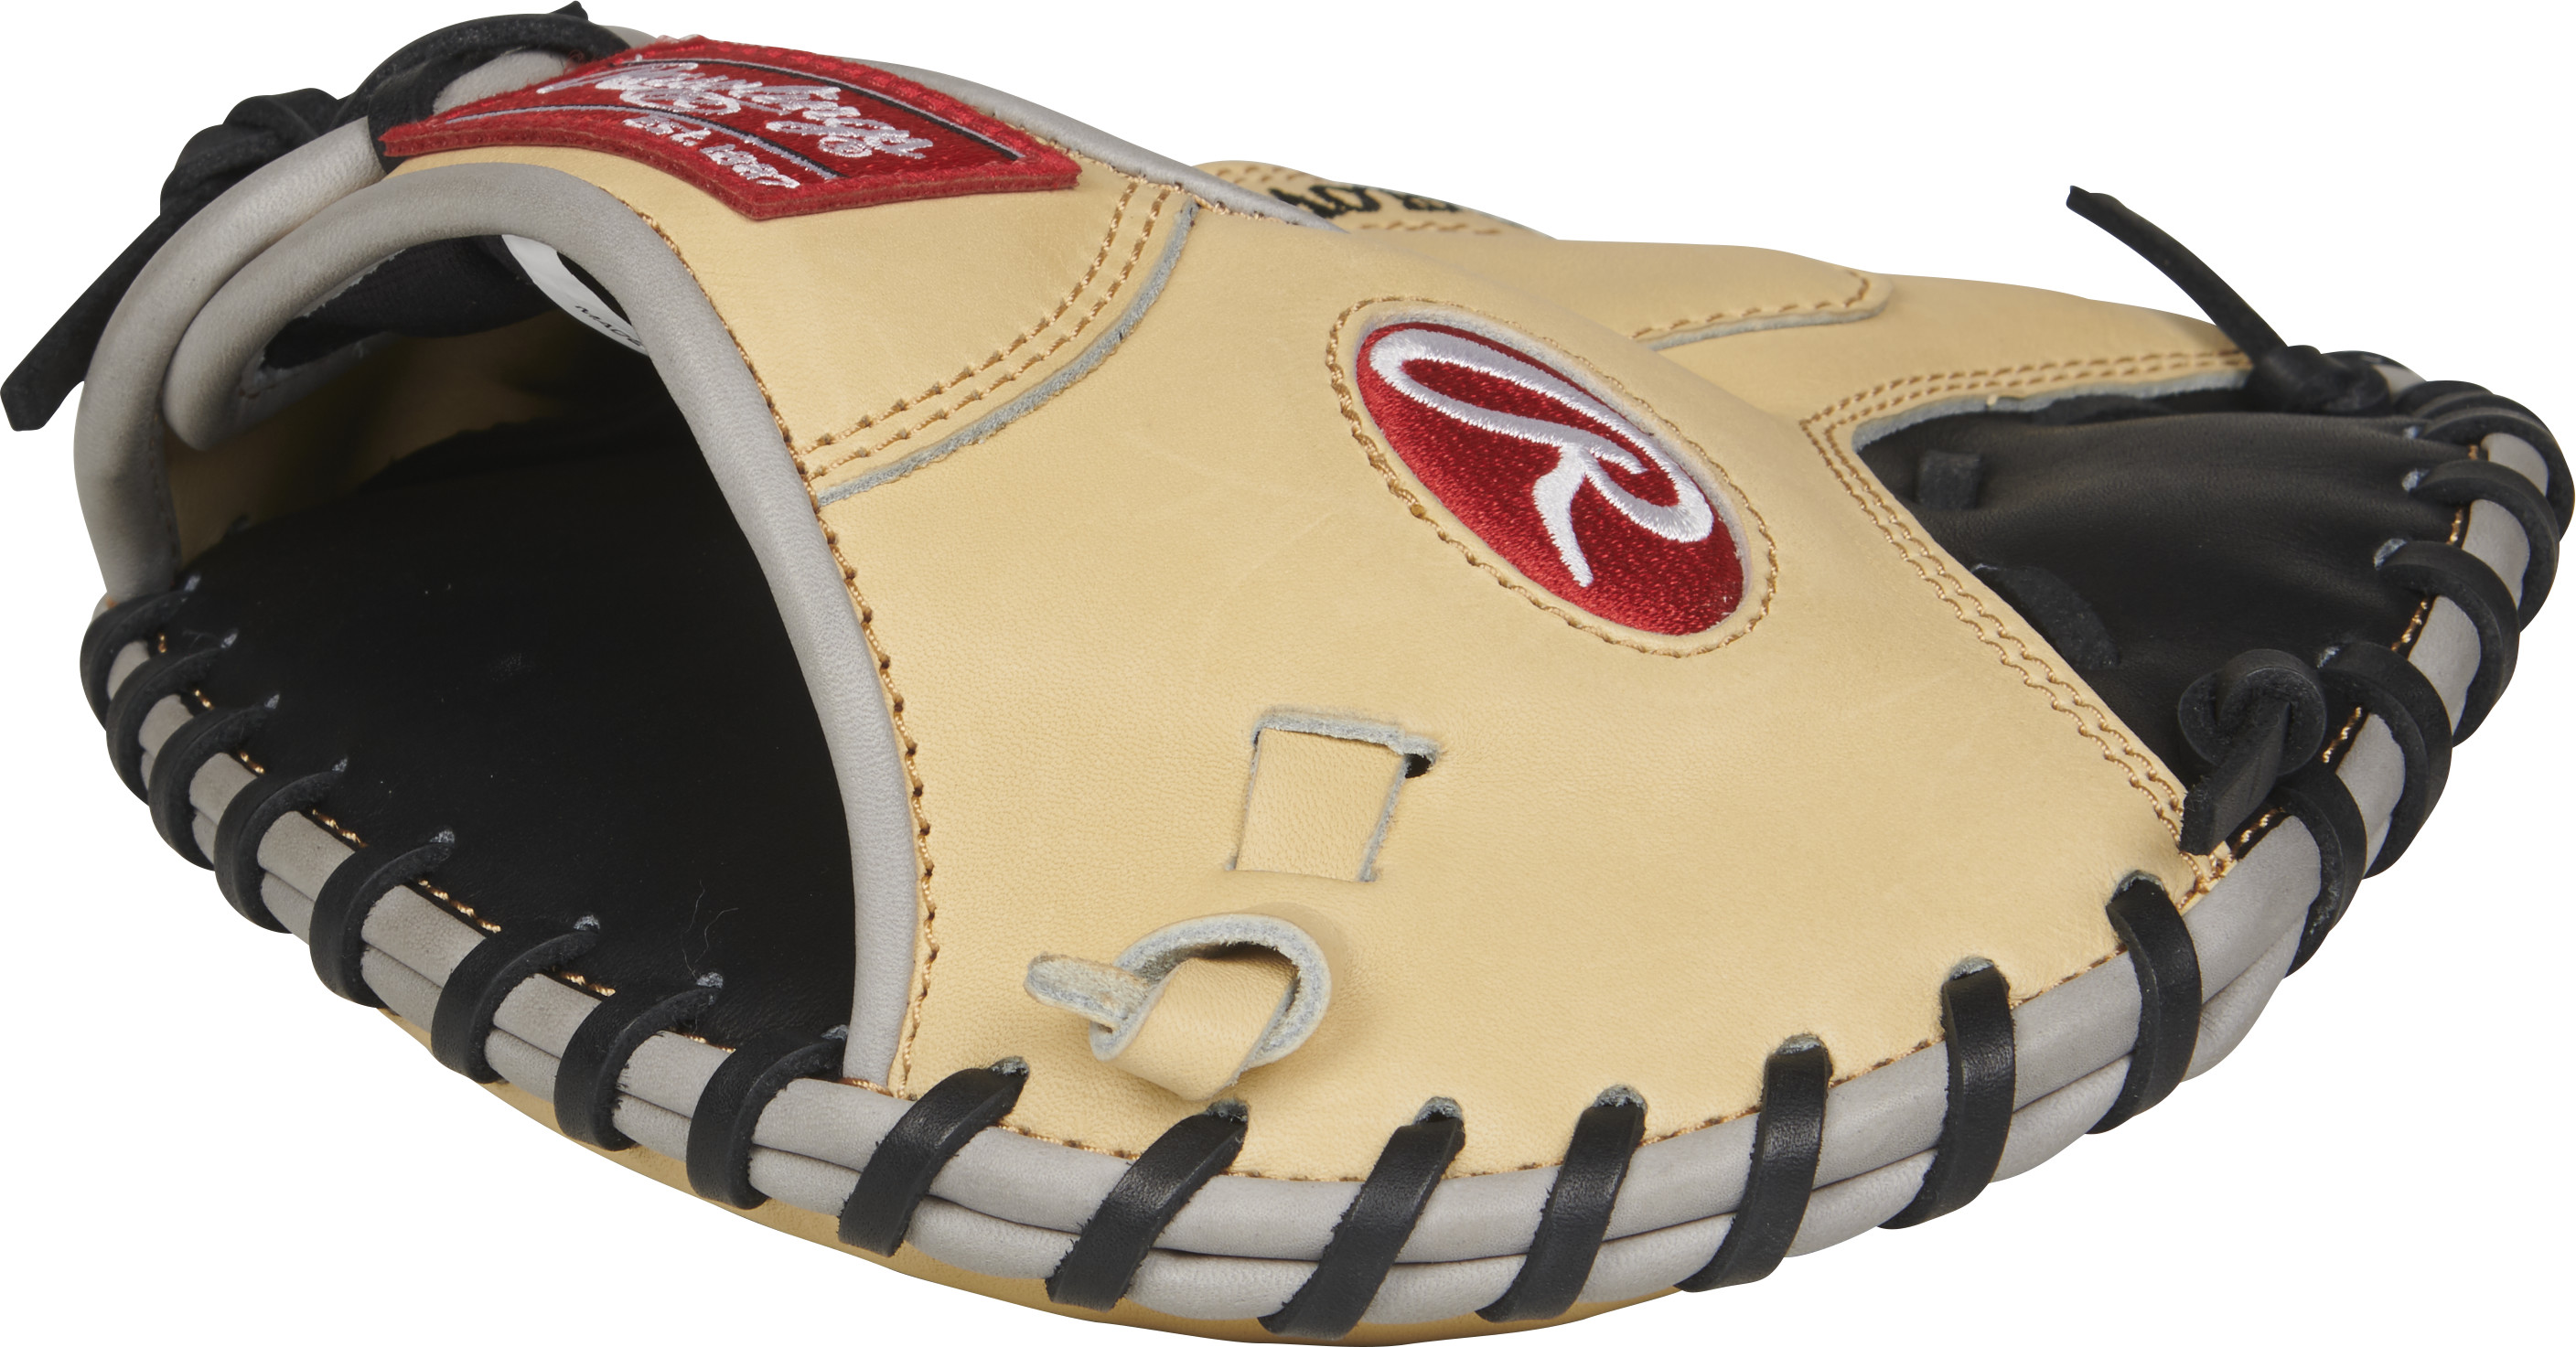 http://www.bestbatdeals.com/images/gloves/rawlings/PROFL12TR-3.jpg